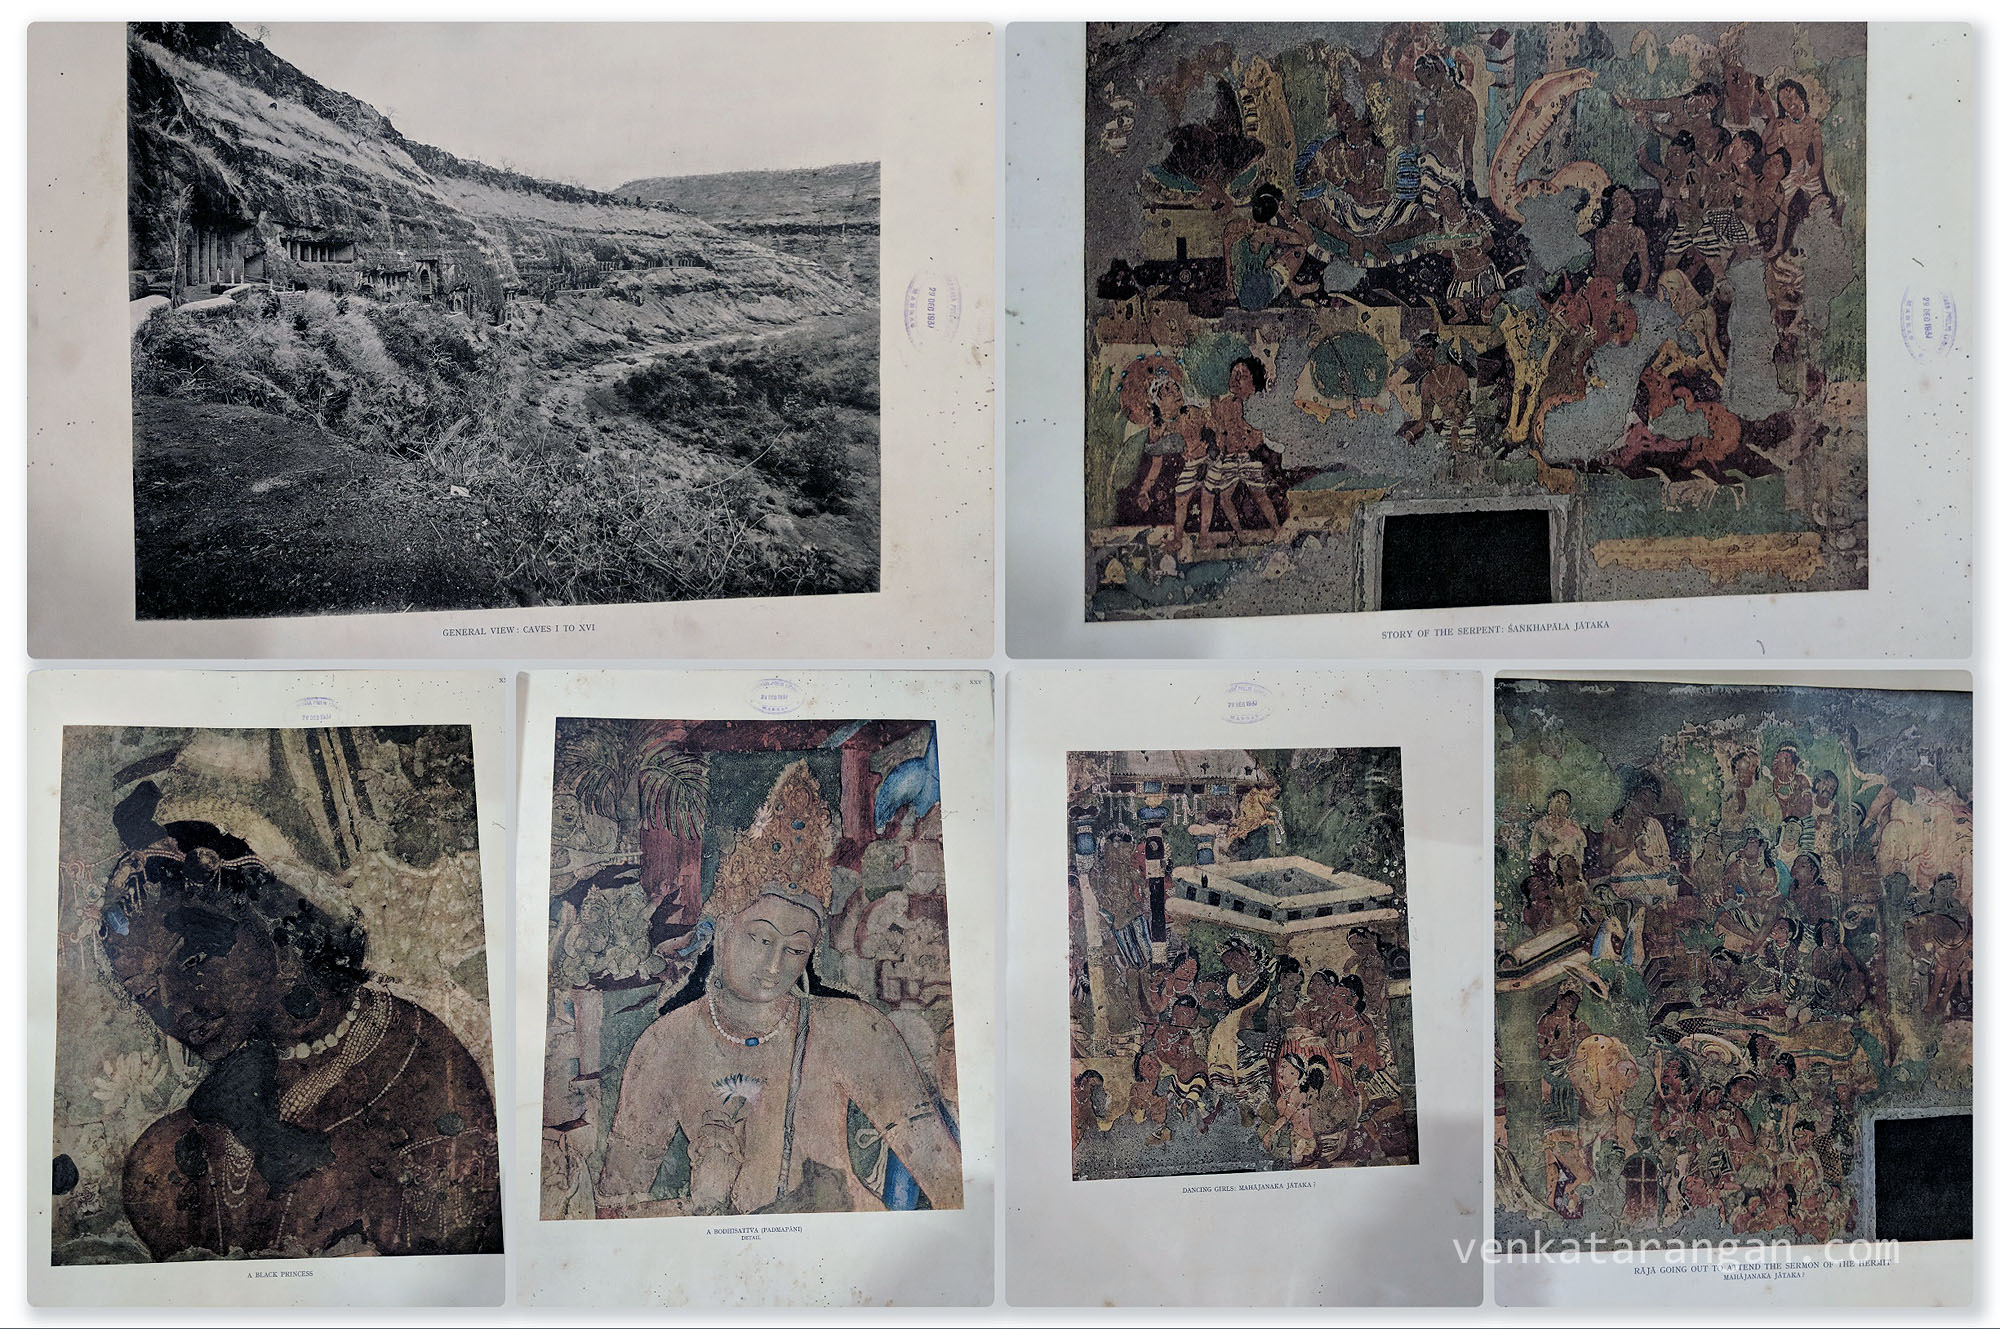 Ajanta Caves - The colour and monochrome reproductions of the Ajanta Frescoes based on Photography - Introduction by G.Yazdani and Laurence Binyon - Published under the authority of the Highness The Nizam.